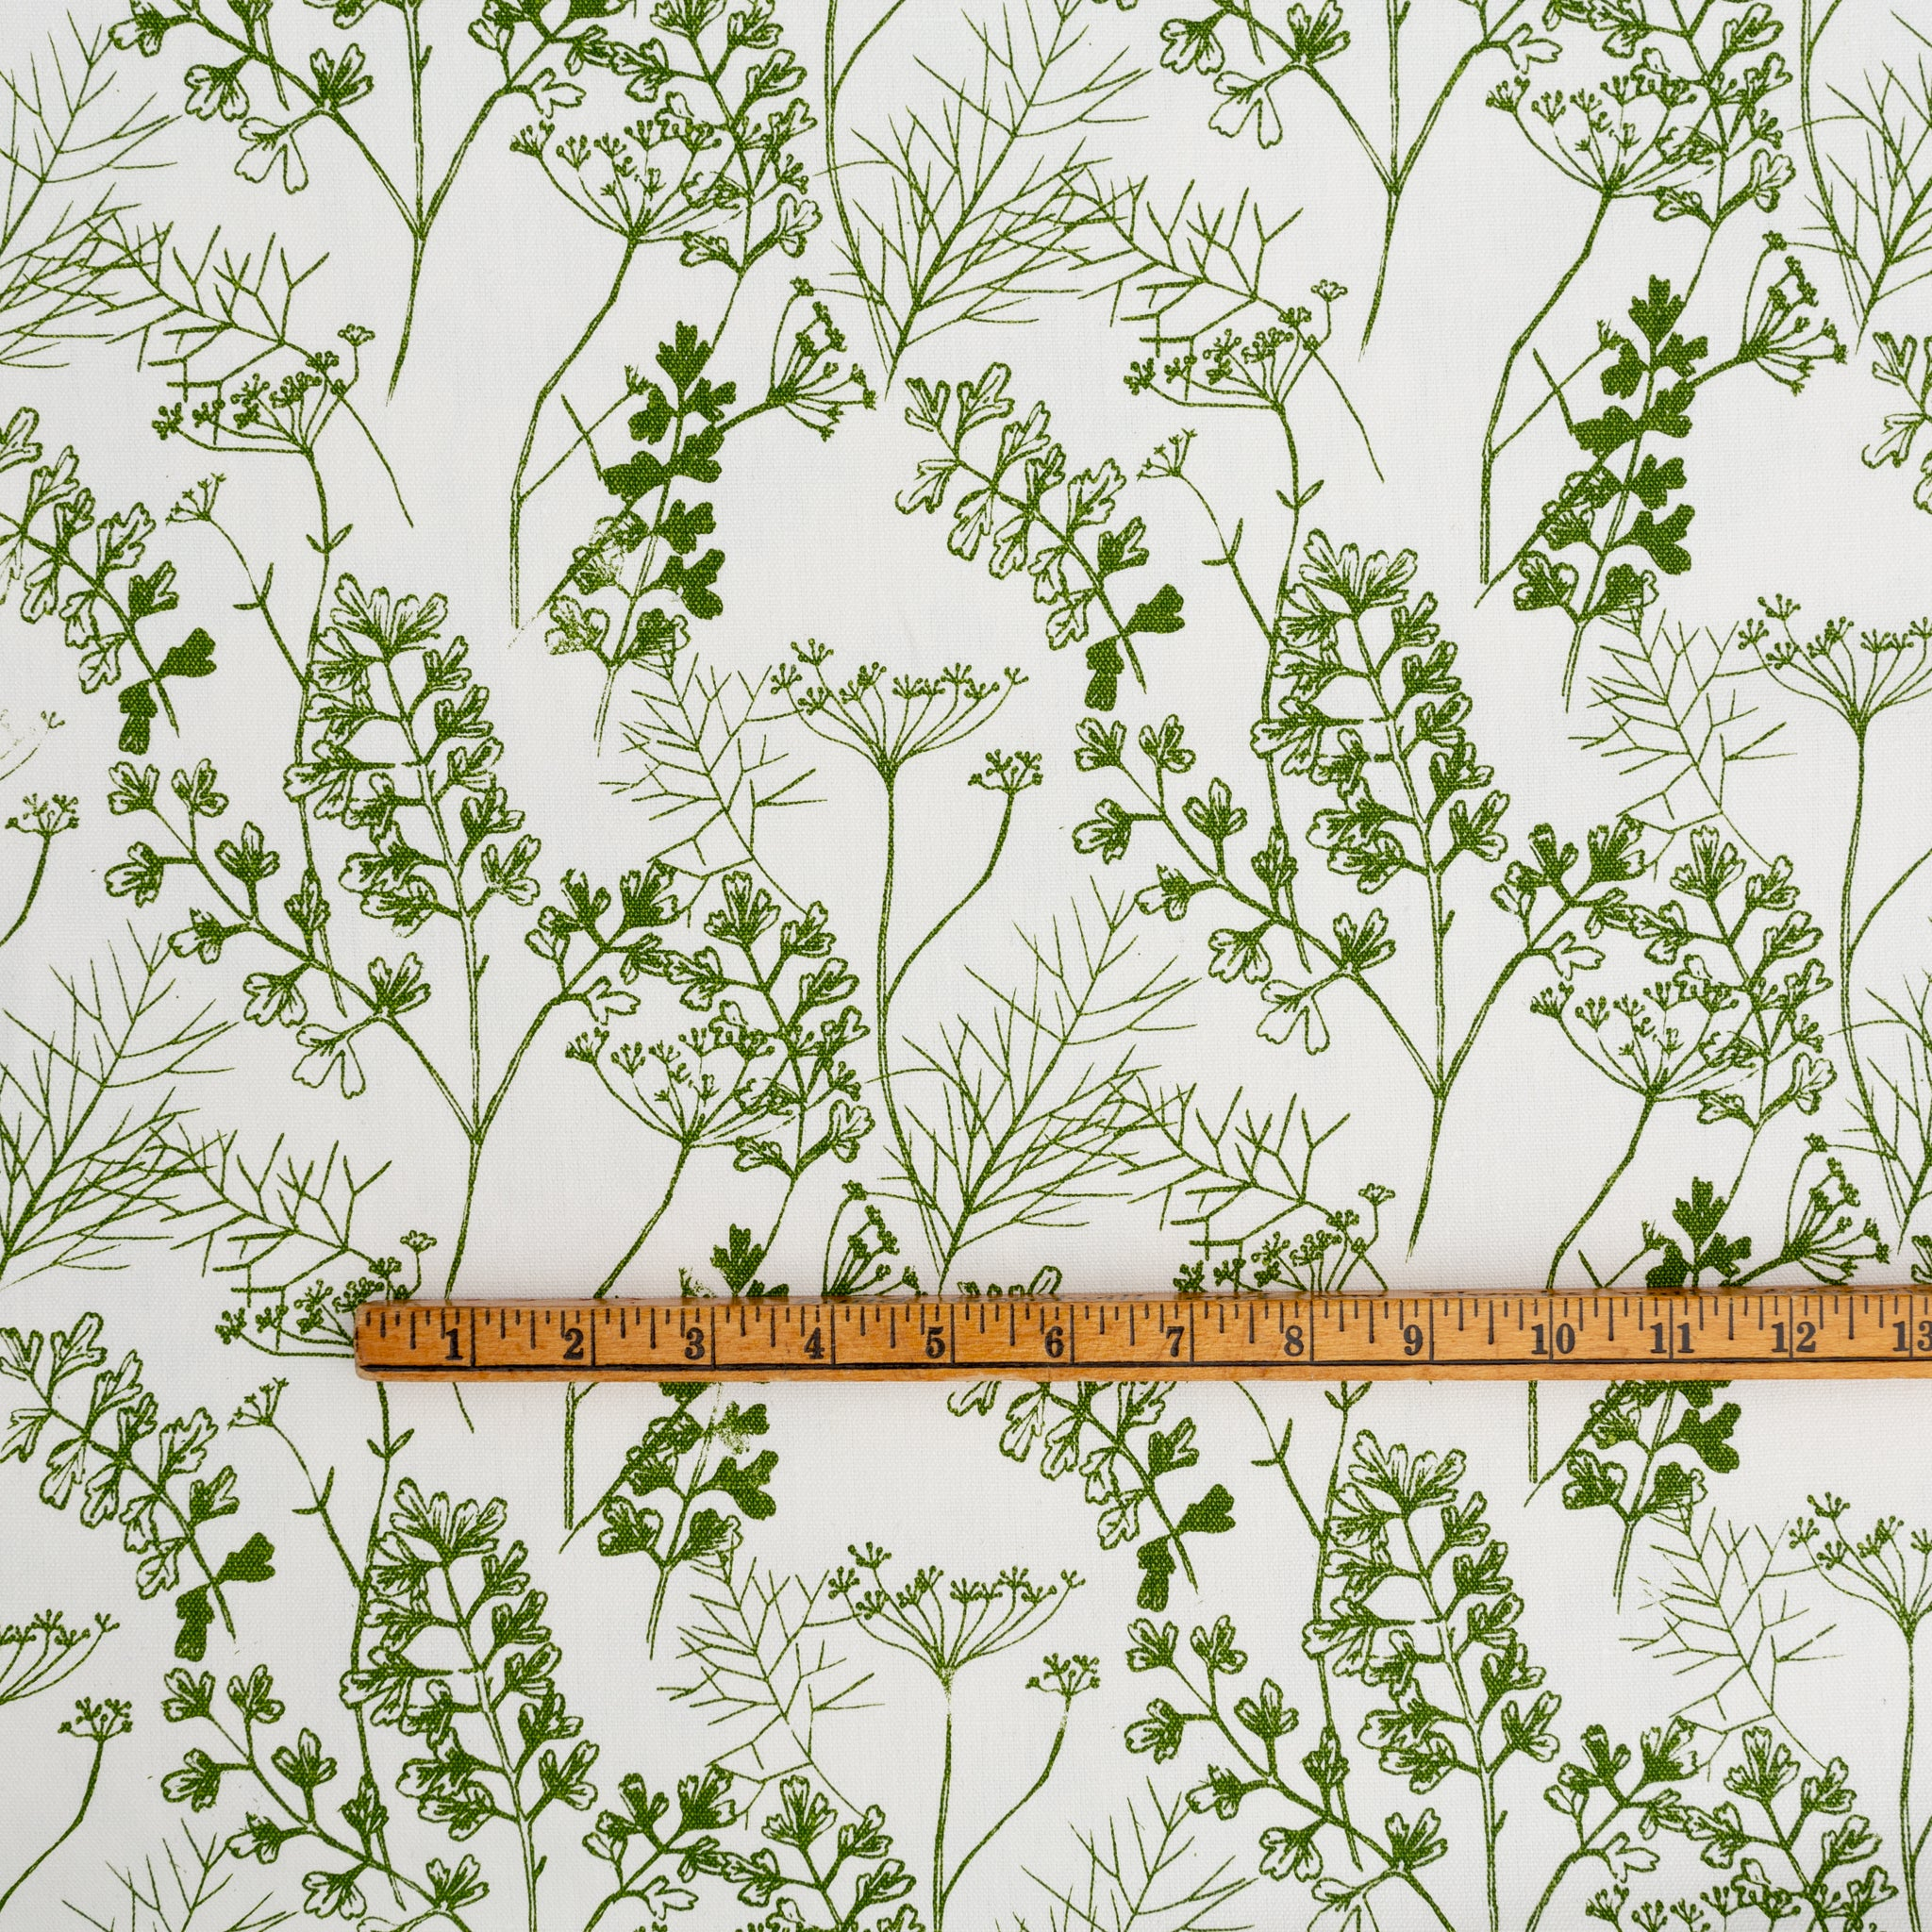 Parsley in Frond: 1/4 Yard (Light Wt)